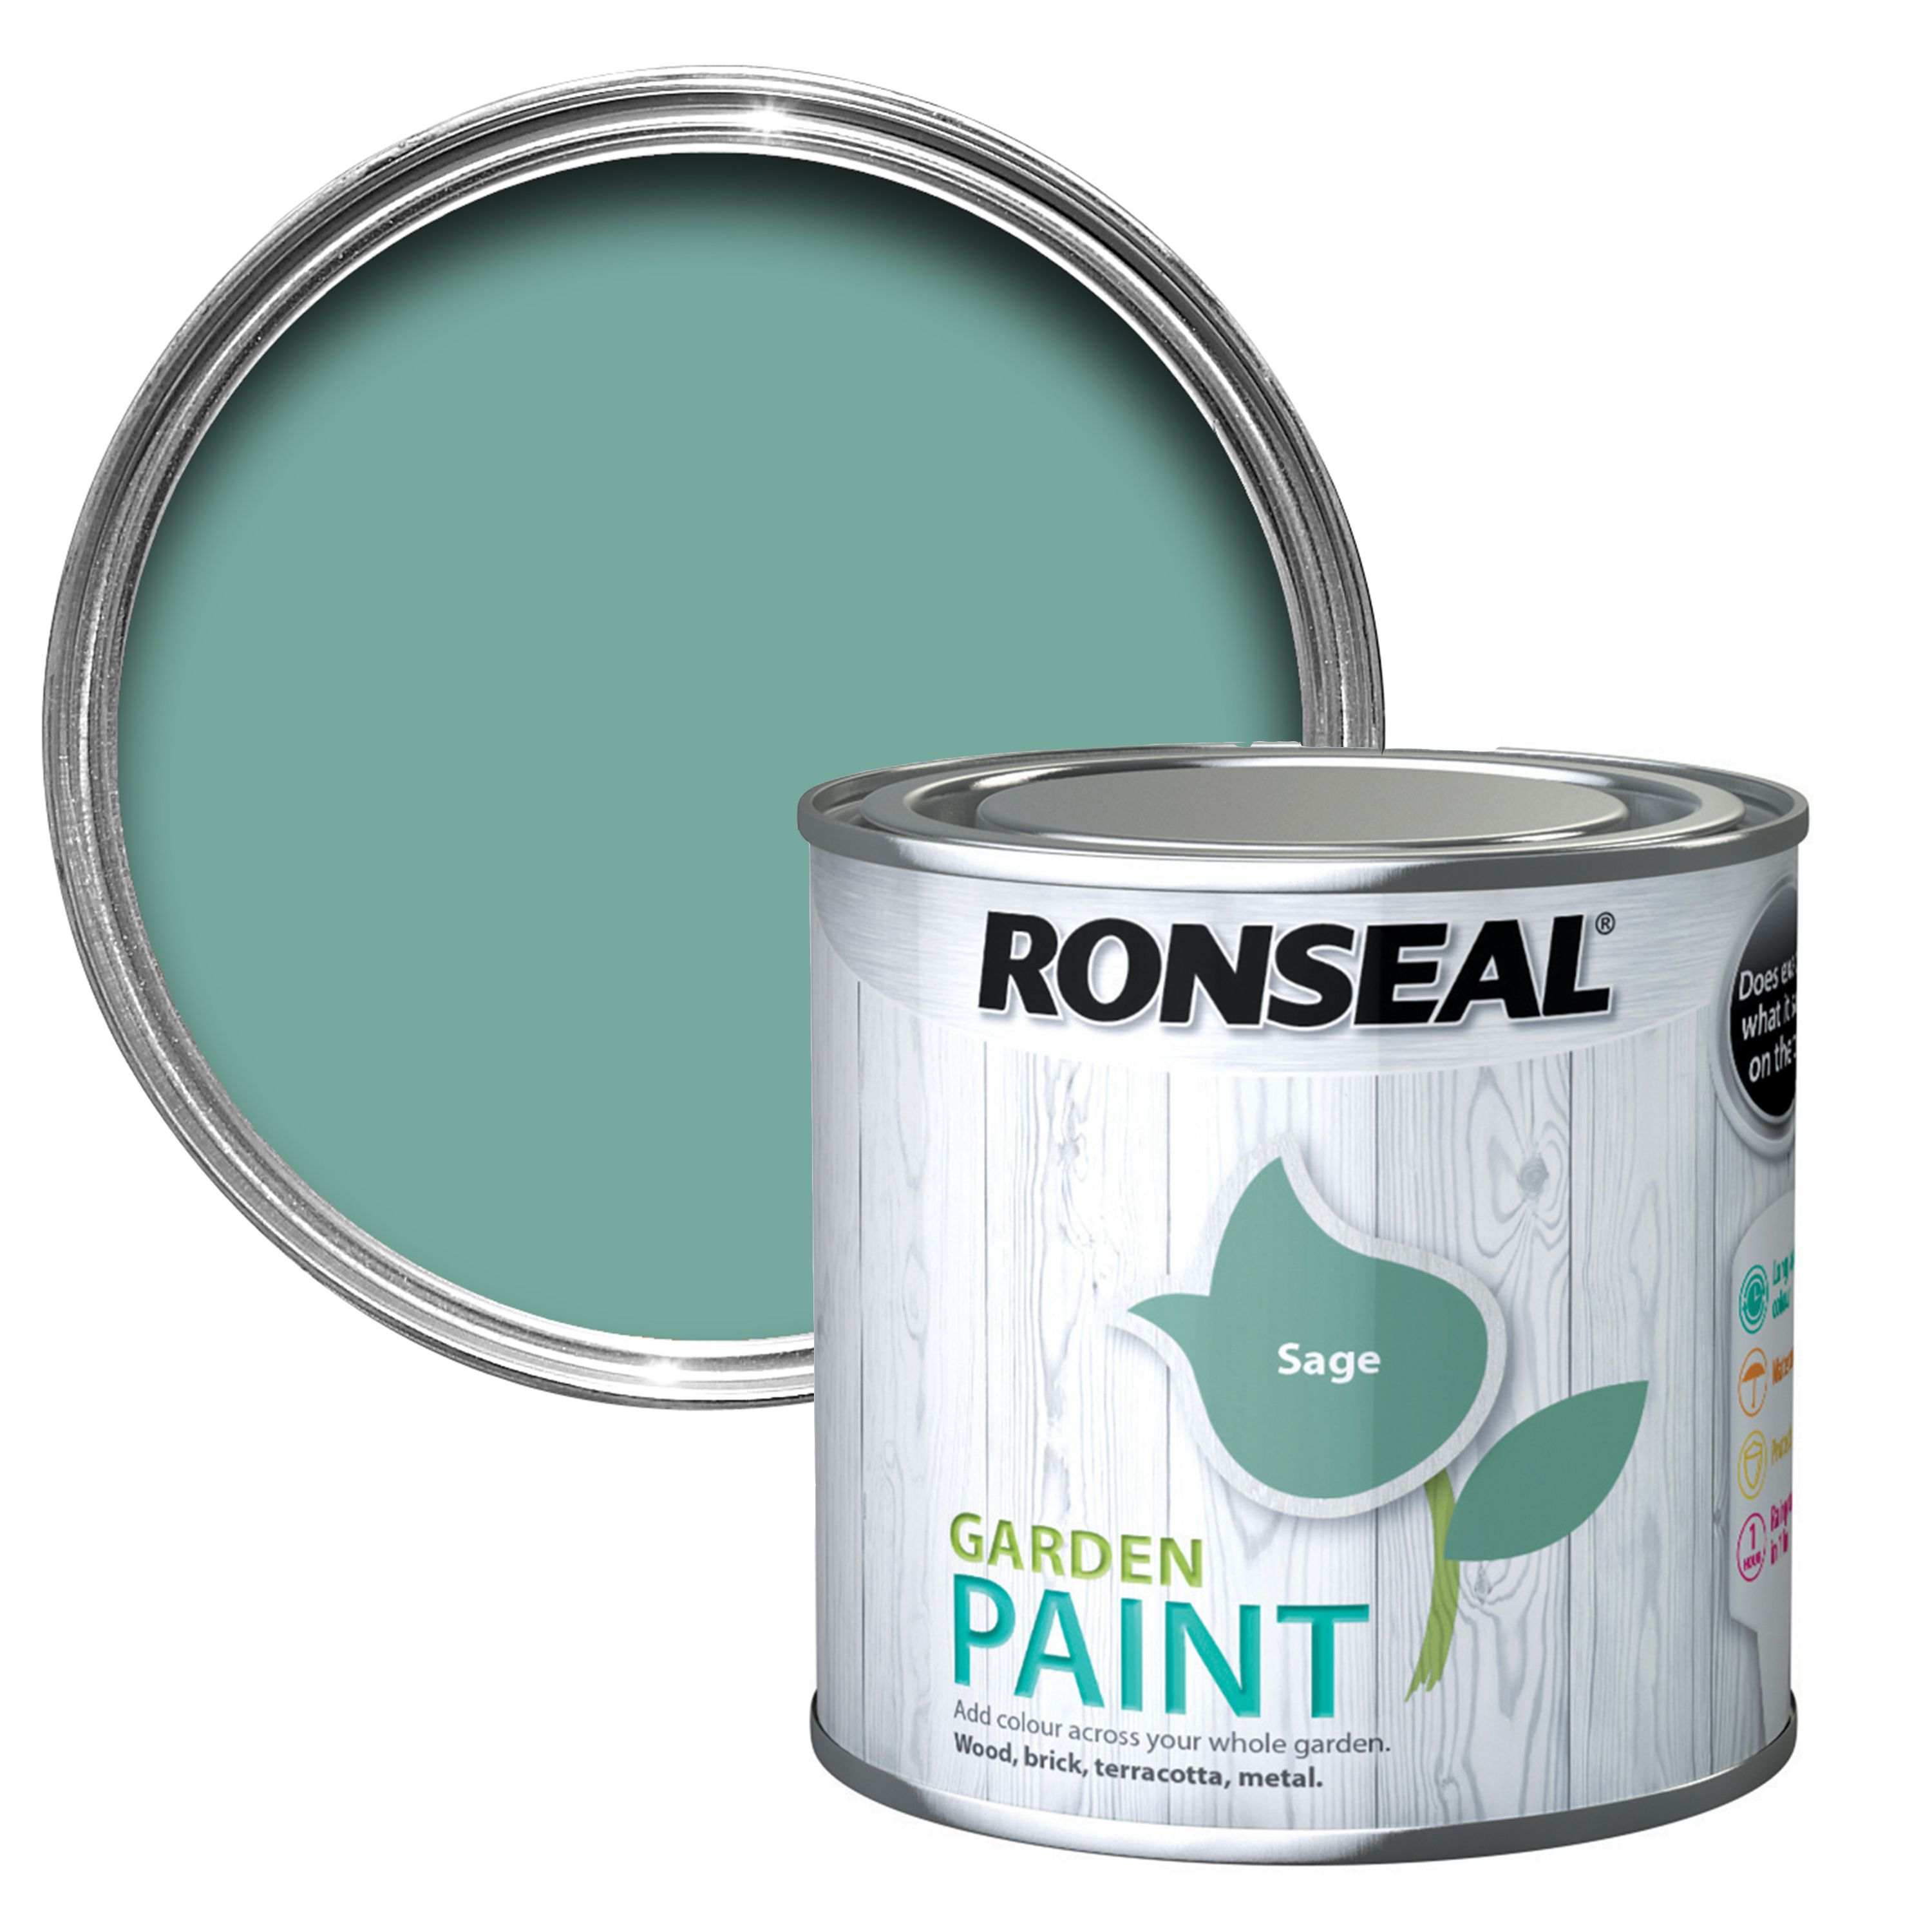 Ronseal chalky furniture paint ronseal - Ronseal Chalky Furniture Paint Ronseal 34